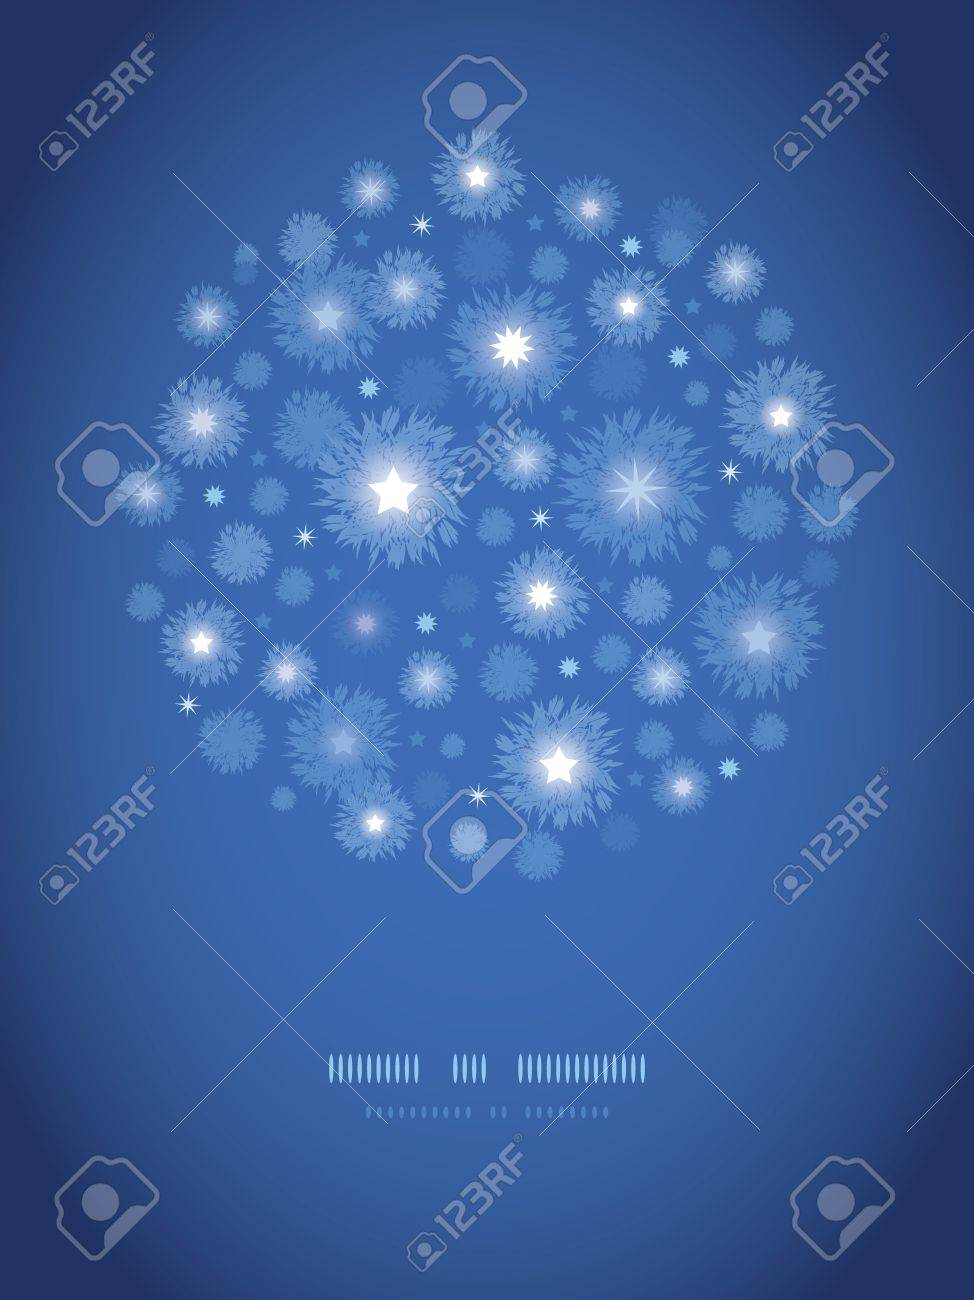 Starry night circle vignette pattern background Stock Vector - 17590971